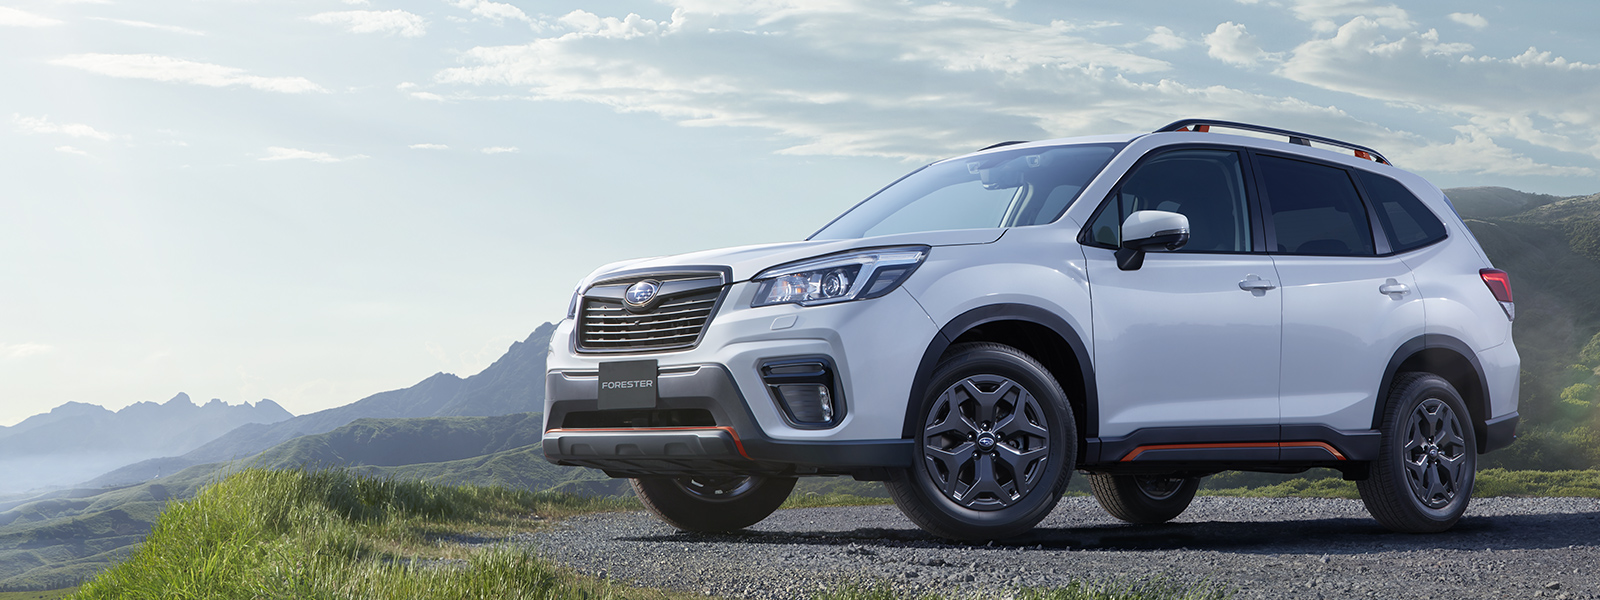 2019 subaru forester vs outback